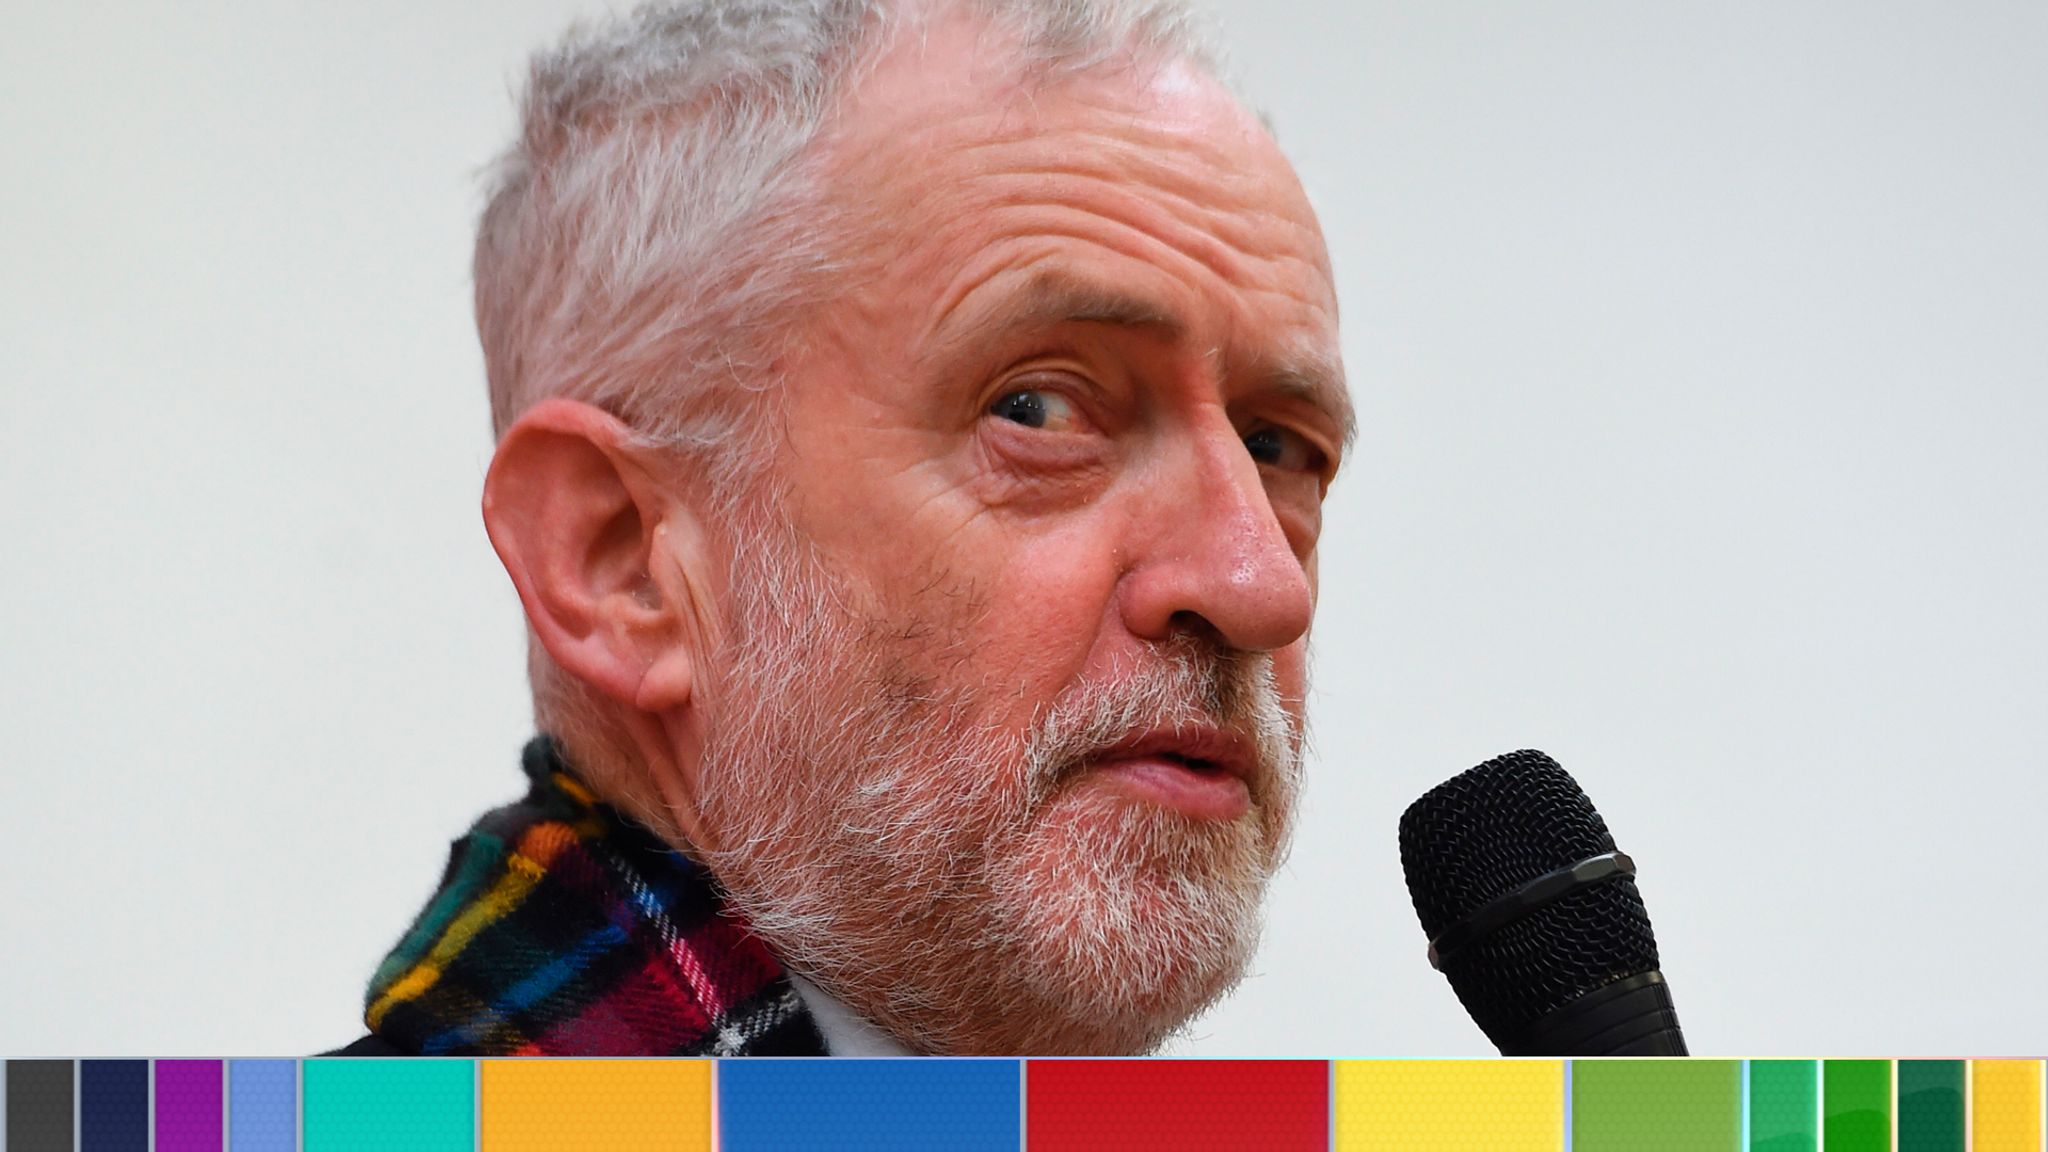 General election: Jeremy Corbyn pledges no Scottish independence referendum in first term as PM